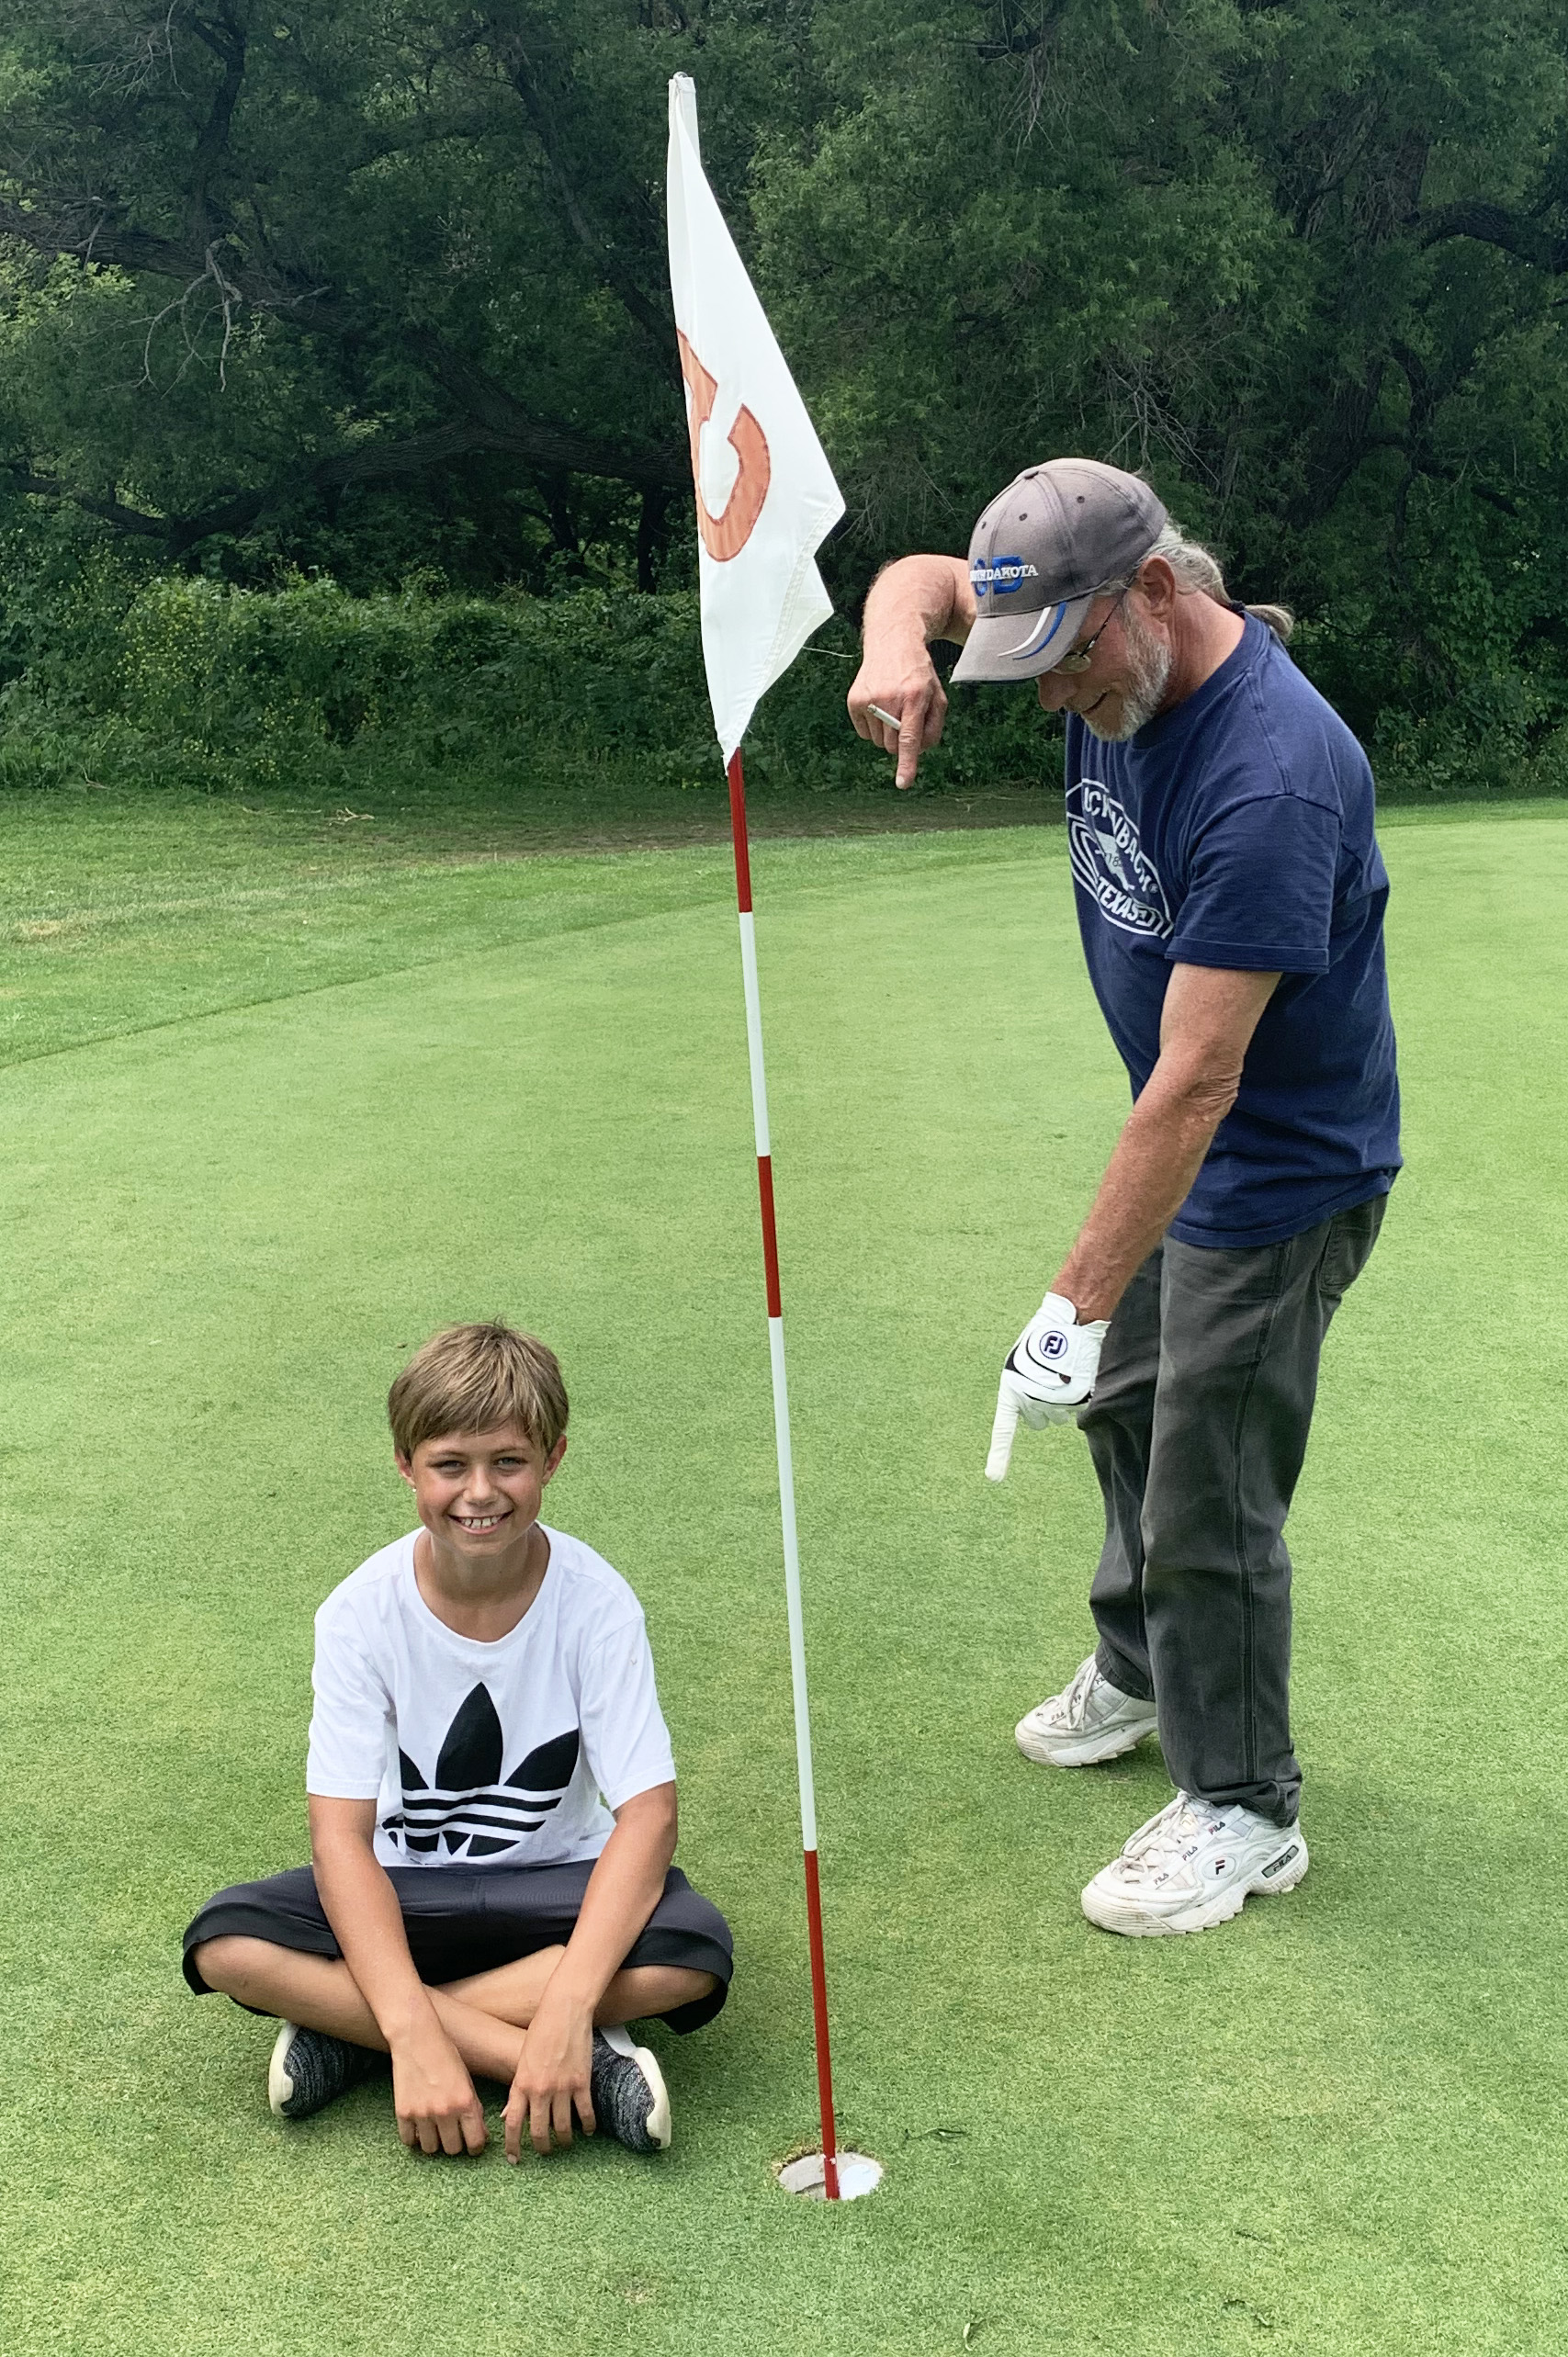 "<span style=""font-size:11px;""><span style=""font-family:arial,helvetica,sans-serif;"">Aiden Moots, 9, of Brandon, achieved a feat many golfers dream of but never achieve: a hole-in-one. The youngster, golfing with his mom, Kimberly, and grandpa, George Tague, used a 7-iron on the 91-yard hole five at Hidden Valley Golf Course on Saturday, July 18.</span></span>"